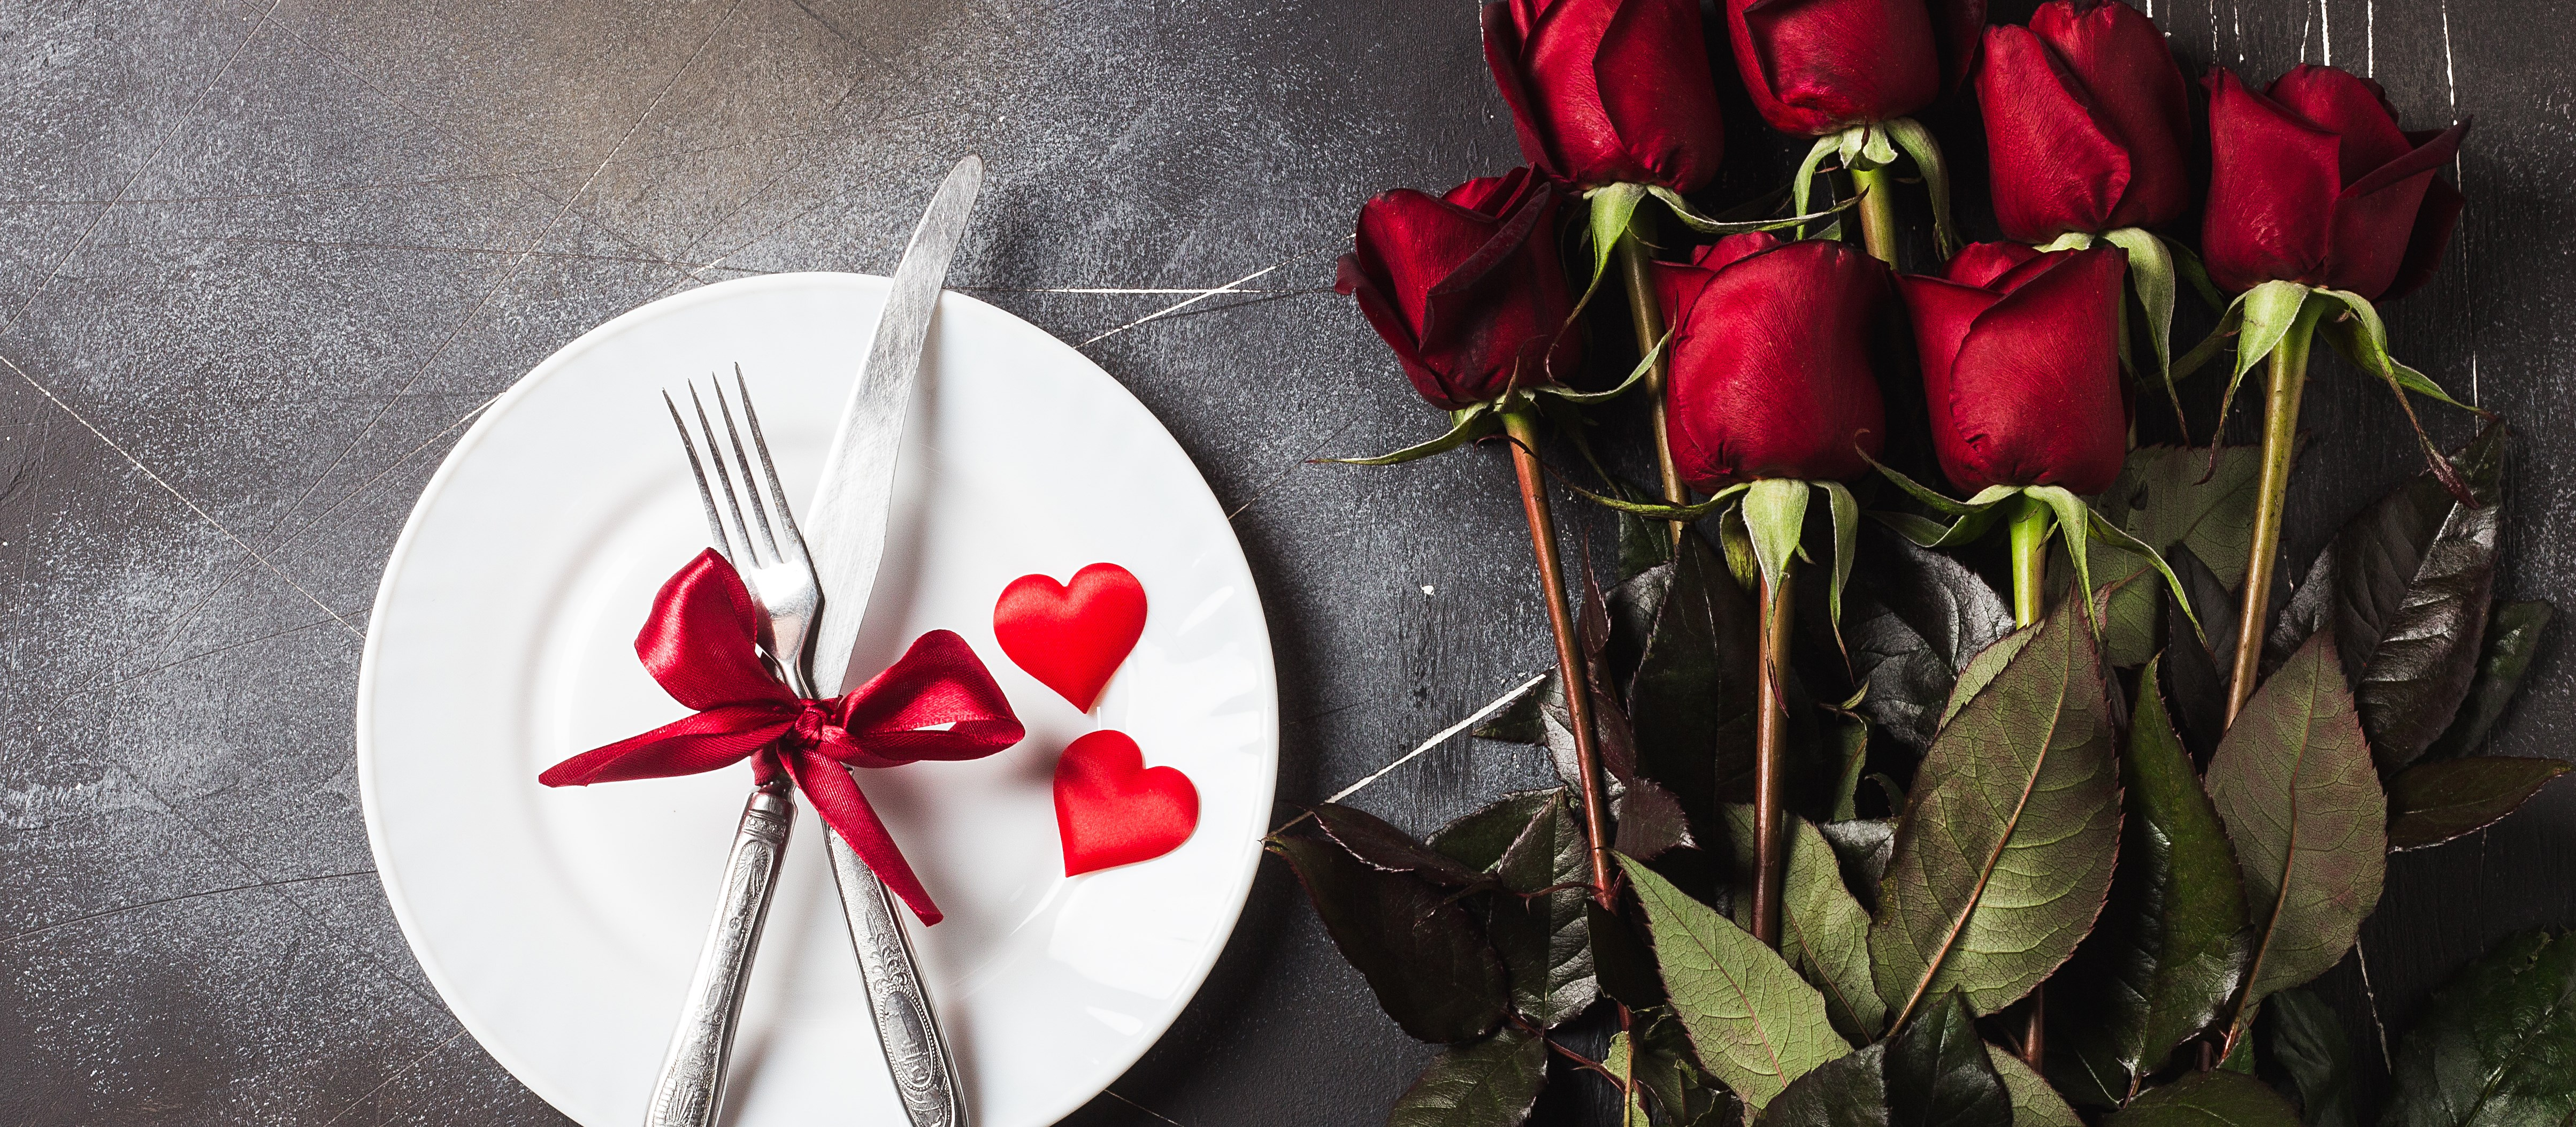 valentines-day-table-setting-romantic-dinner-marry-me-wedding-engagement.jpg